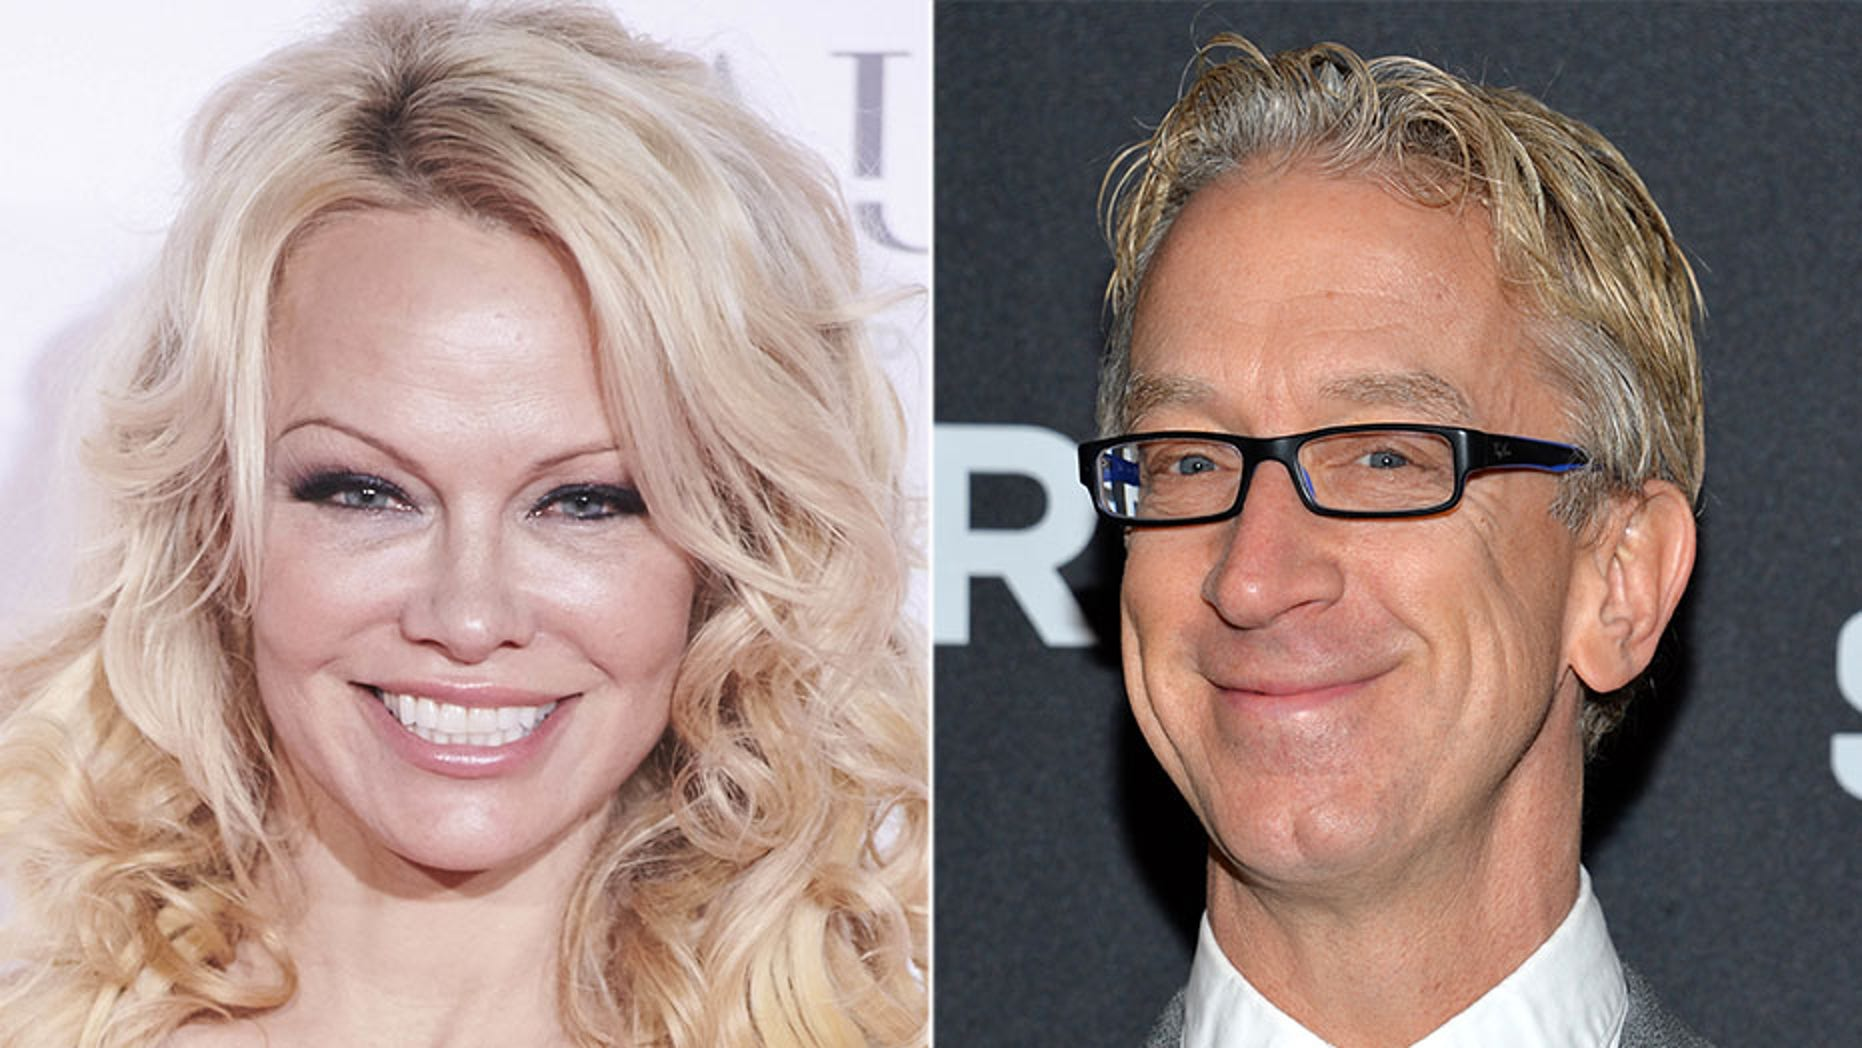 A resurfaced video showed Andy Dick groping Pamela Anderson's breasts.